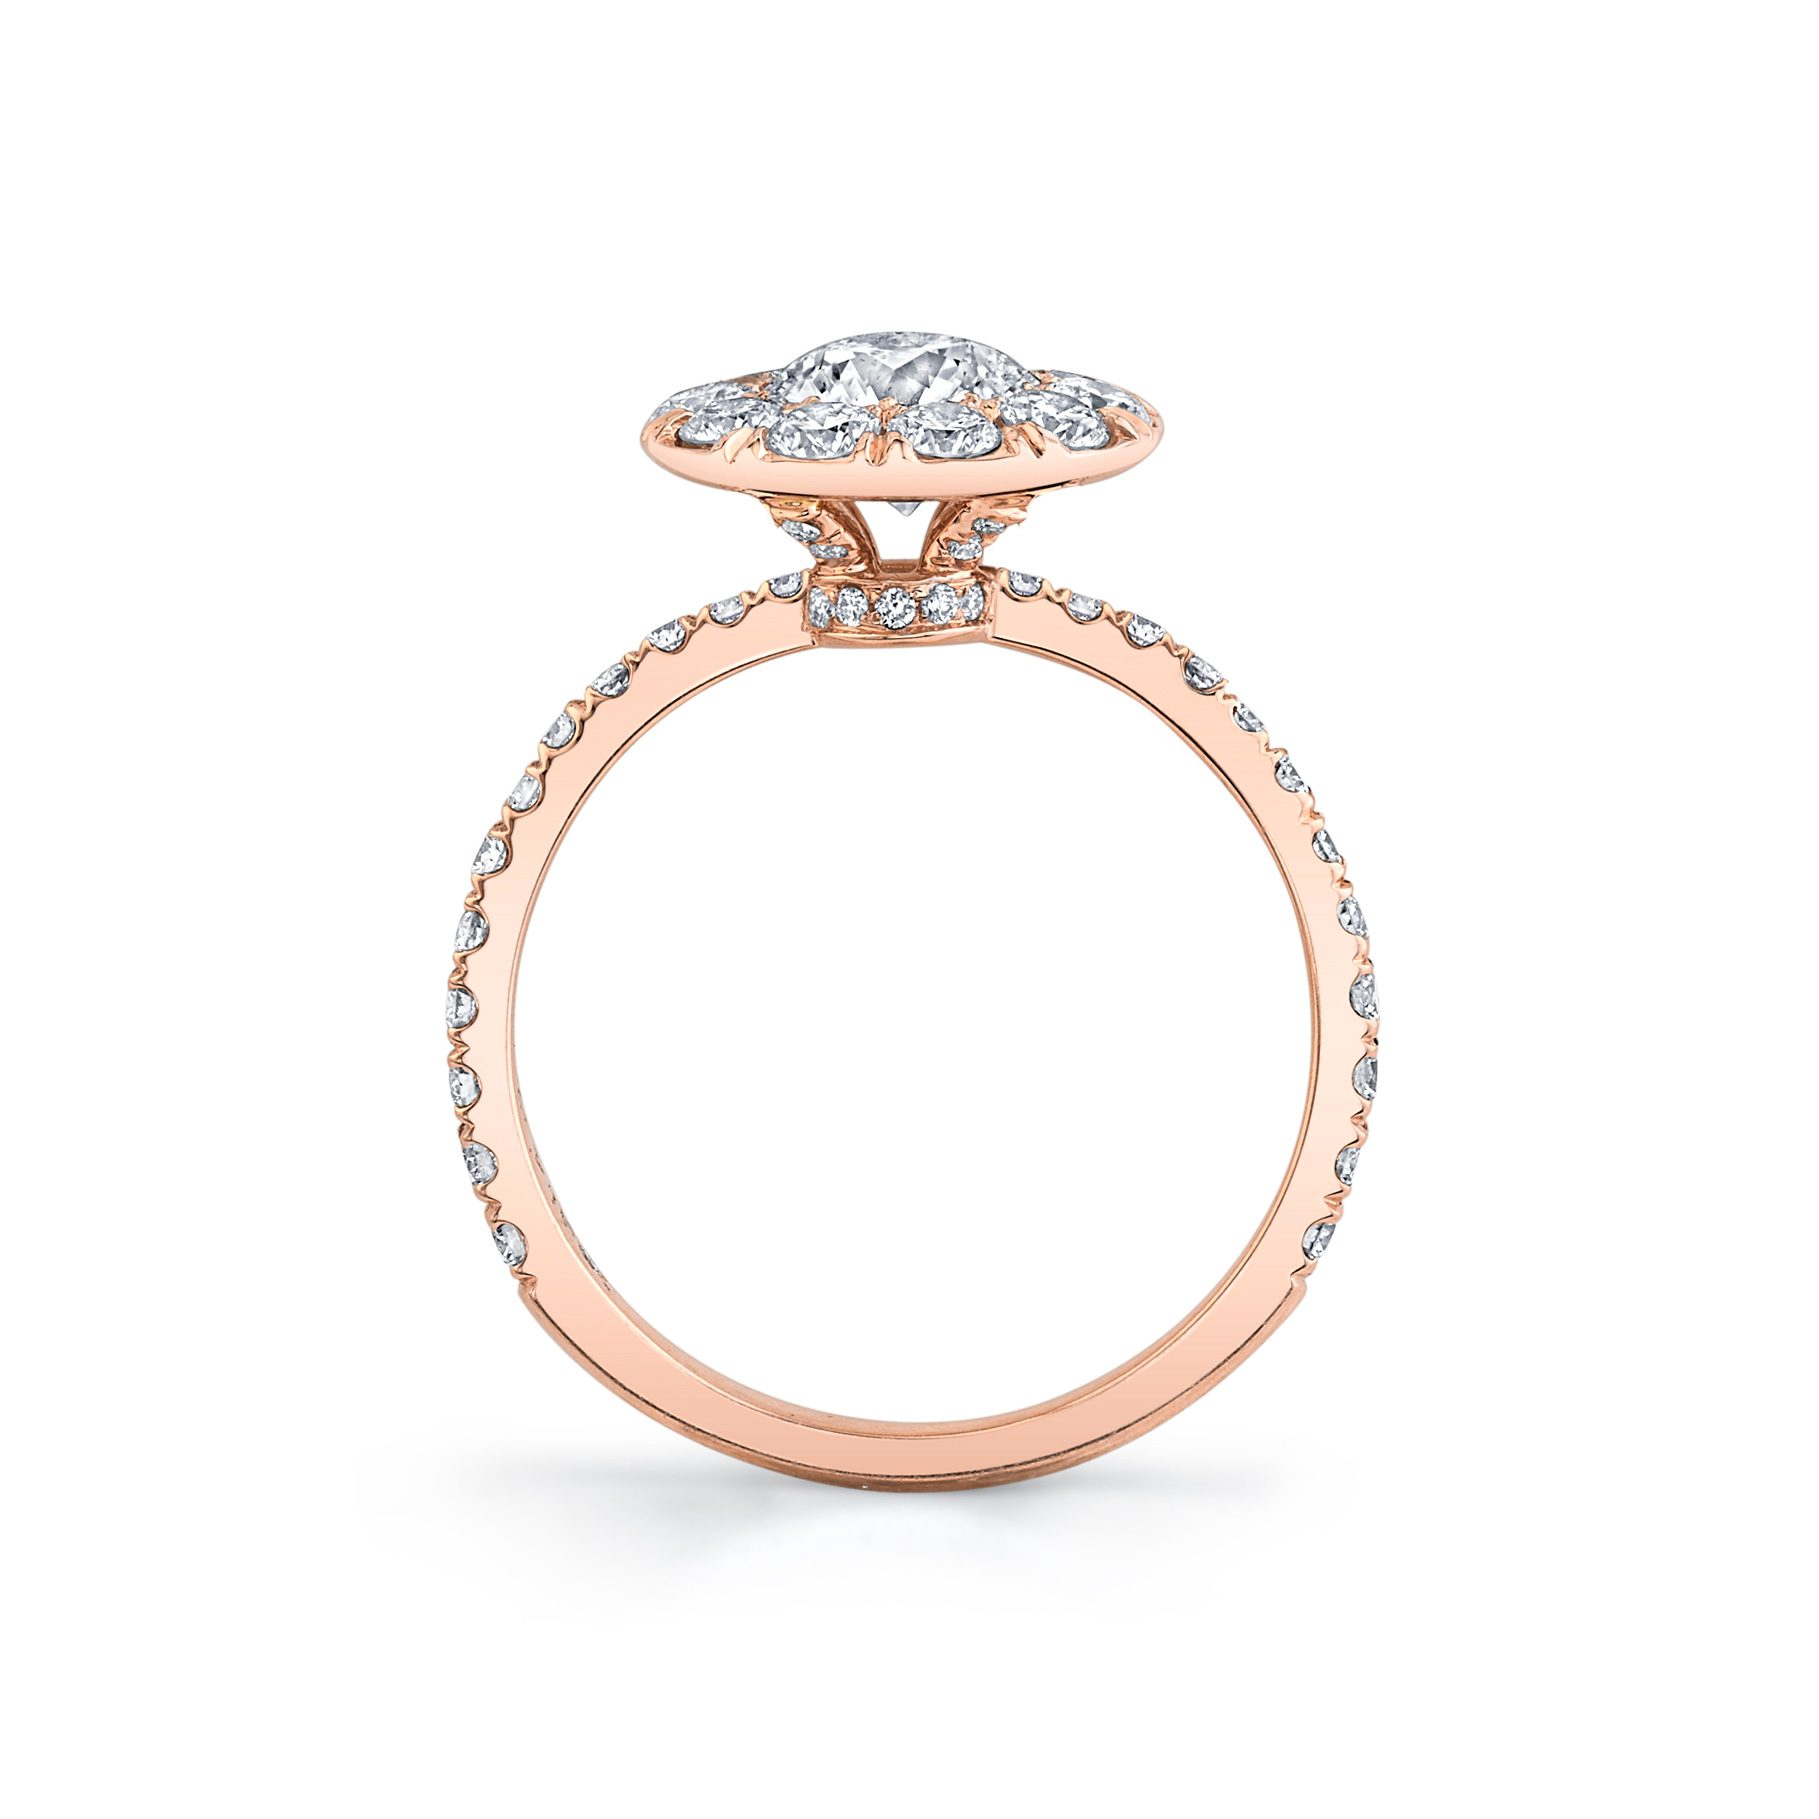 Eloise Floating Round Brilliant Seamless Solitaire® Engagement Ring with diamond pavé in 18k Rose Gold Standing View by Oui by Jean Dousset